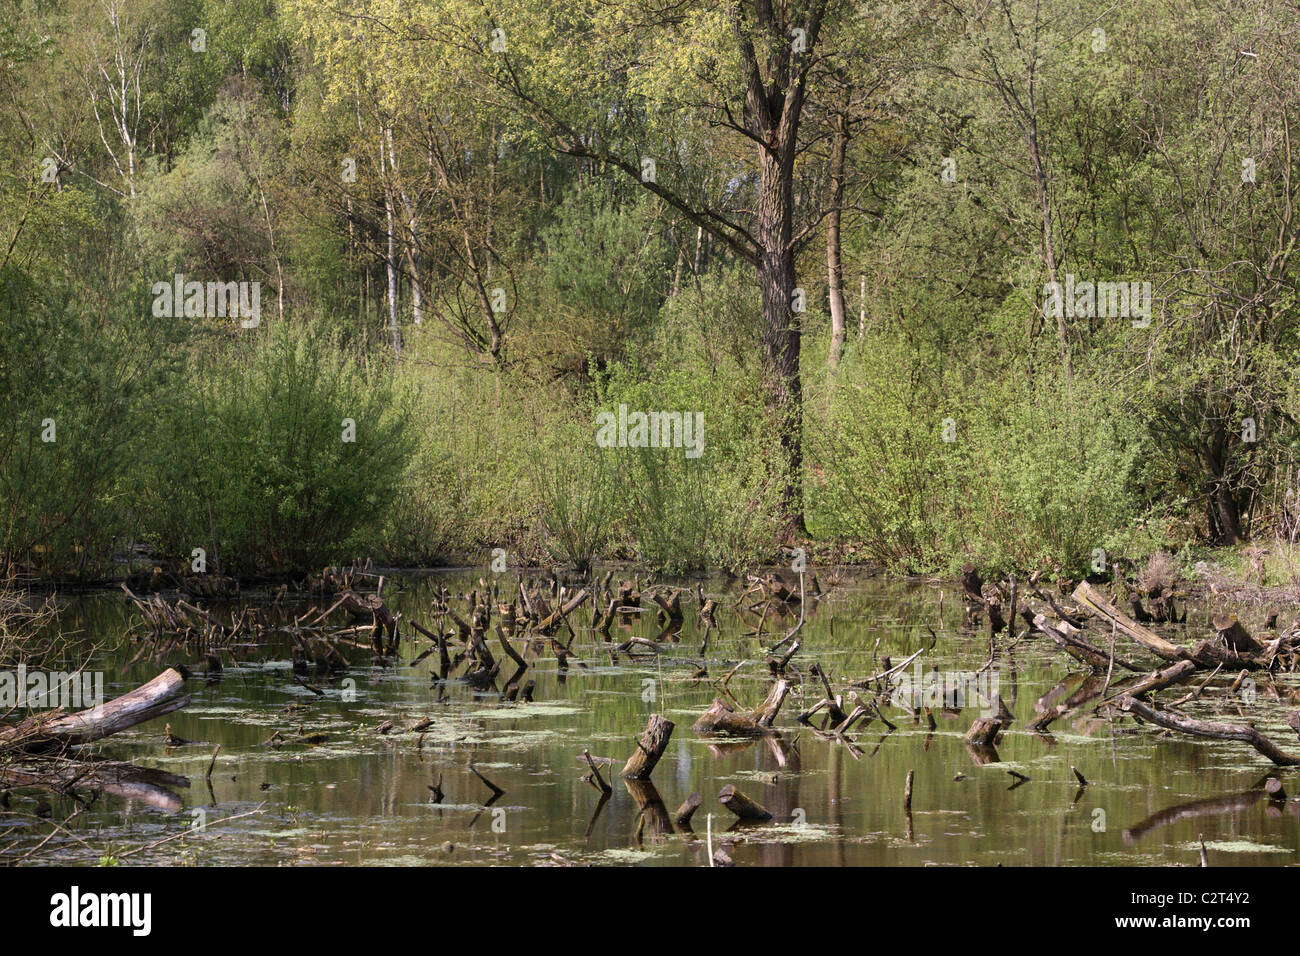 Flooded woodland lake tree stumps in water - Stock Image